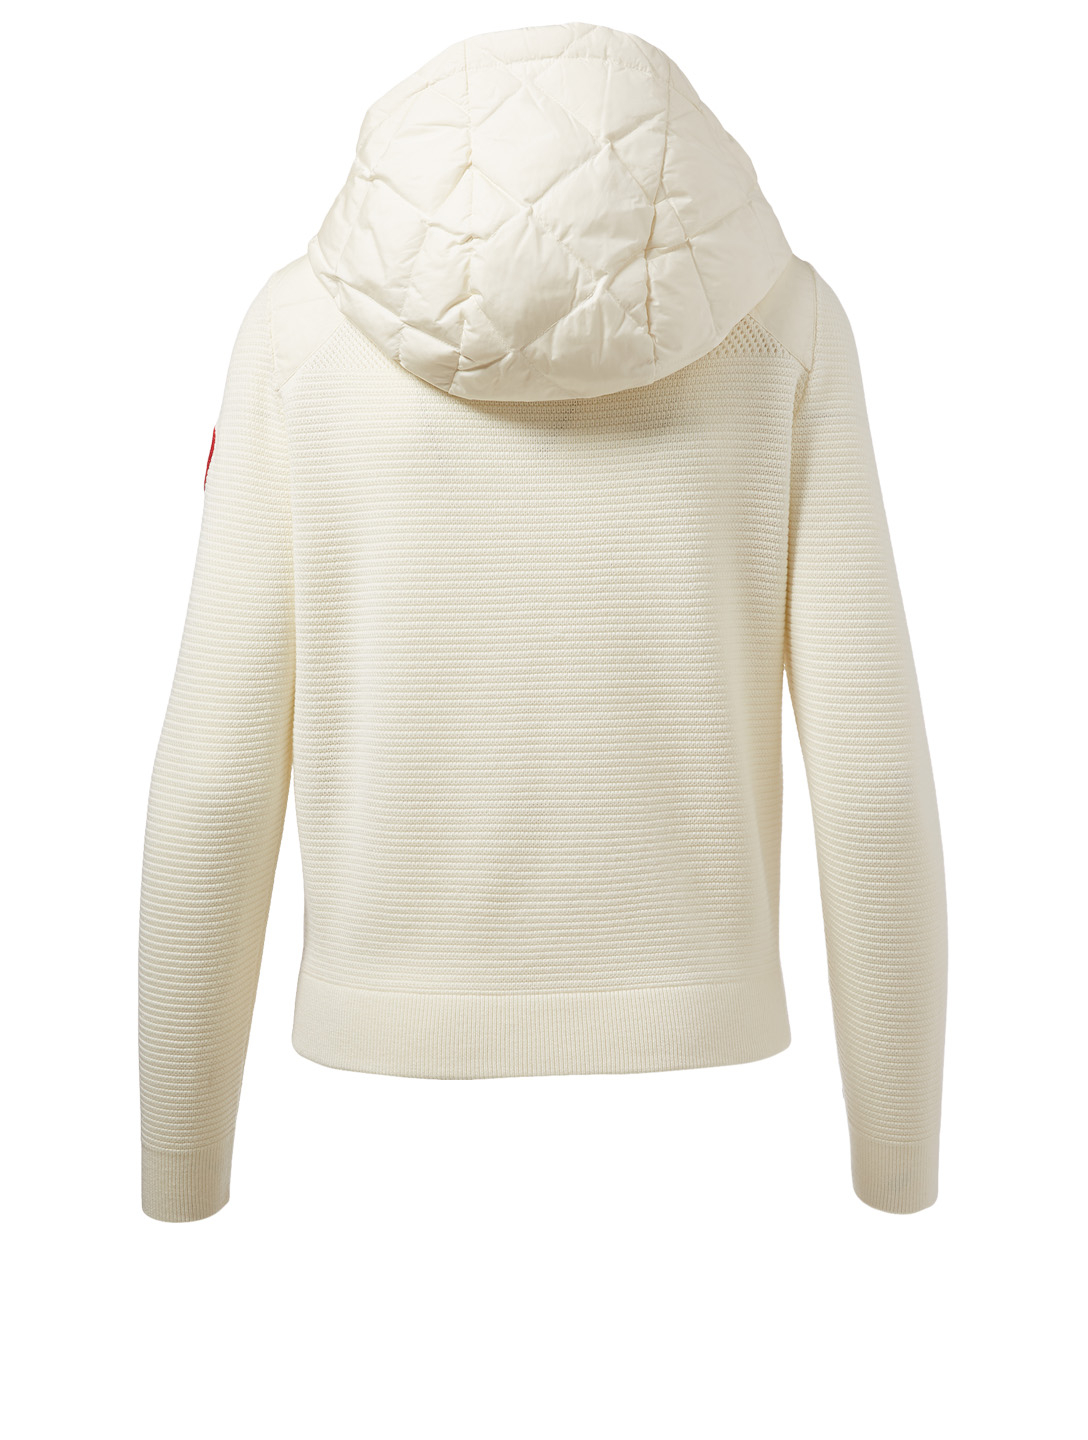 CANADA GOOSE HyBridge Quilted Knit Hoodie Women's White